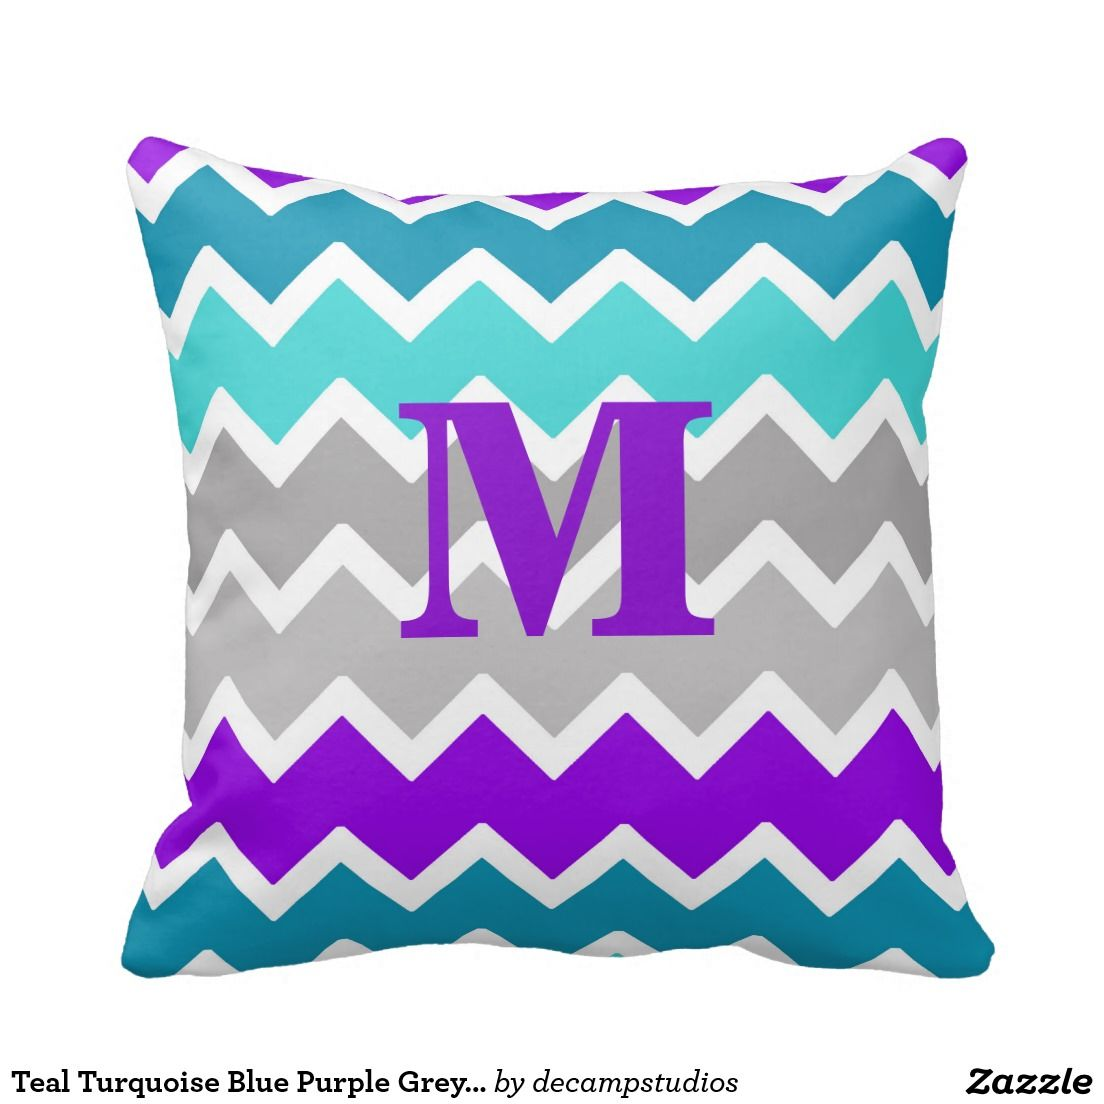 Teal Turquoise Blue Purple Grey Gray Chevron Throw Pillow ...